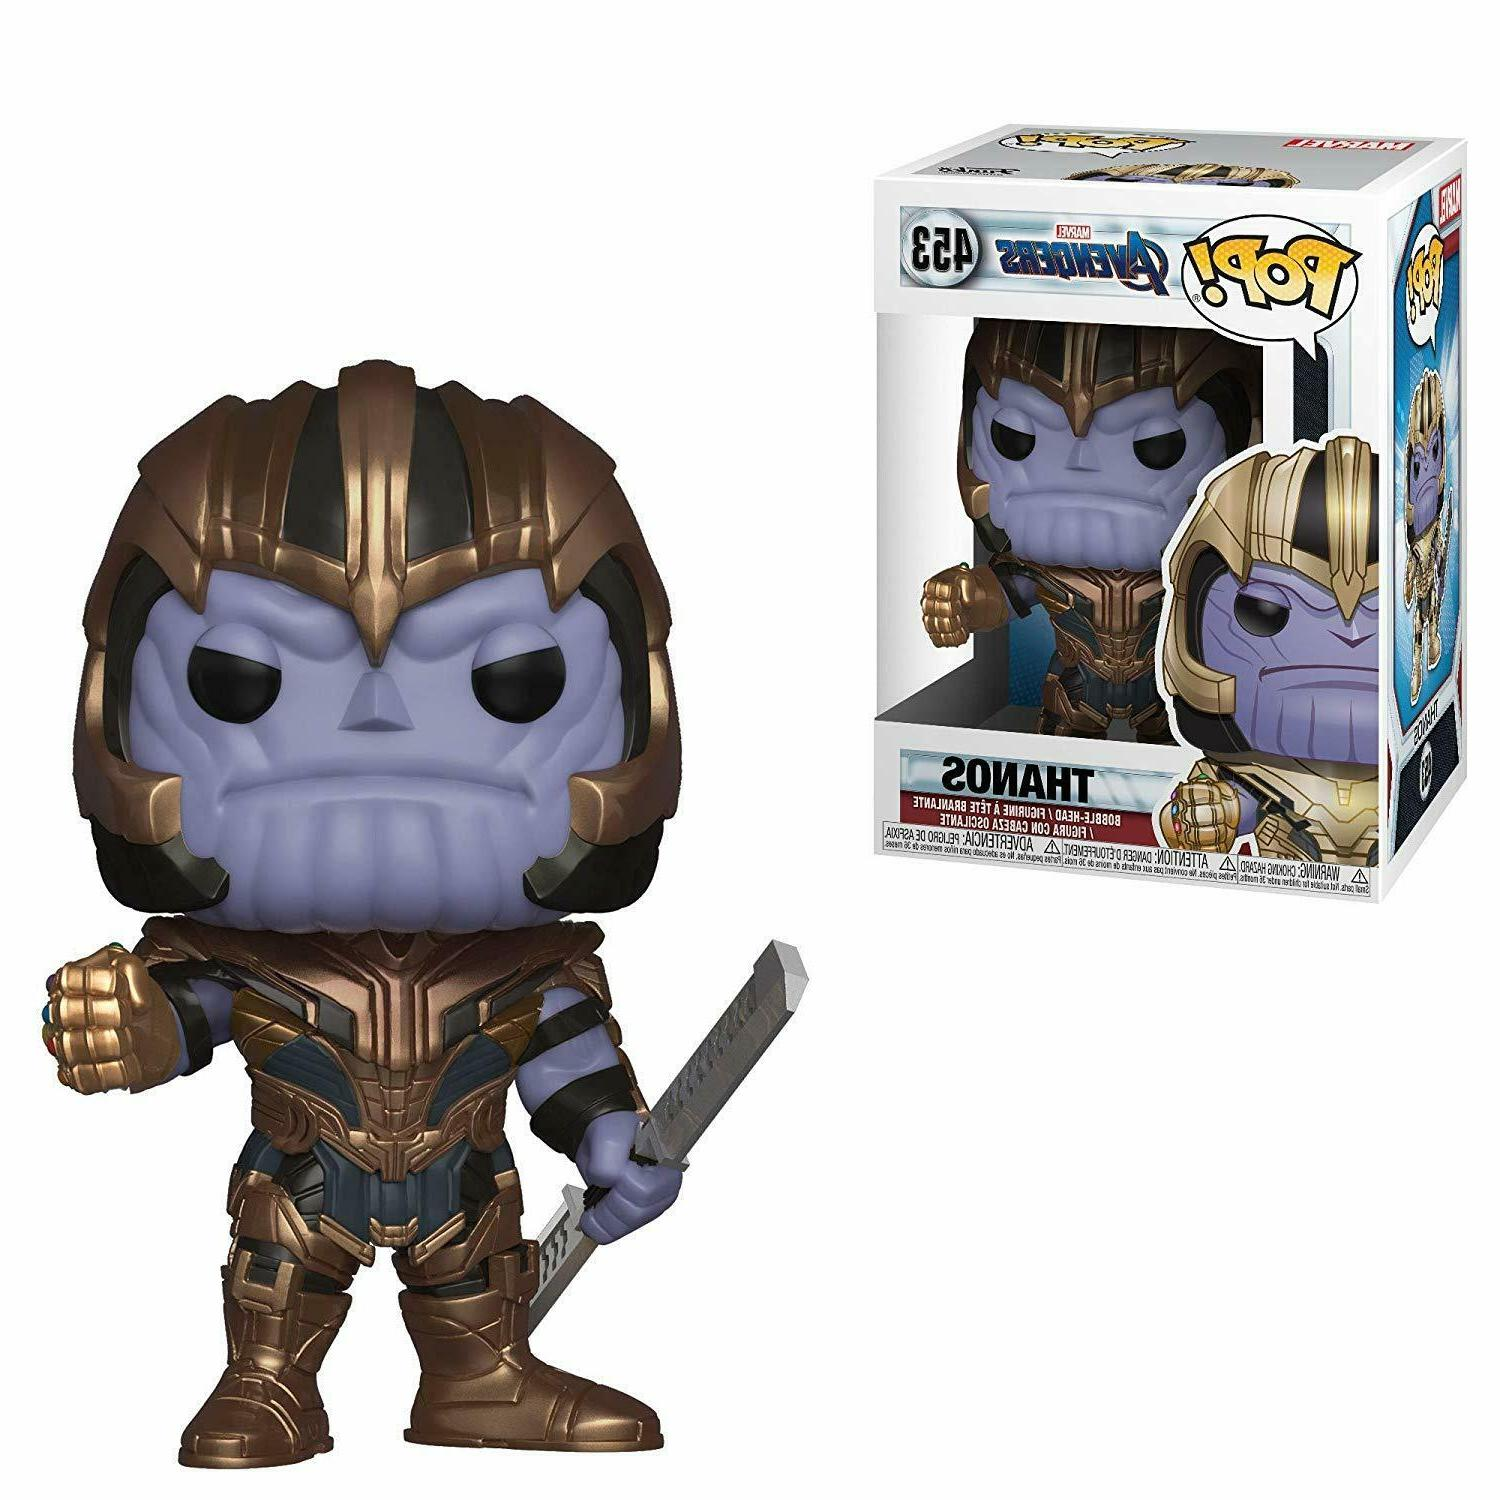 Funko Pop! Marvel: Avengers: Endgame - Thanos Collectible Vi